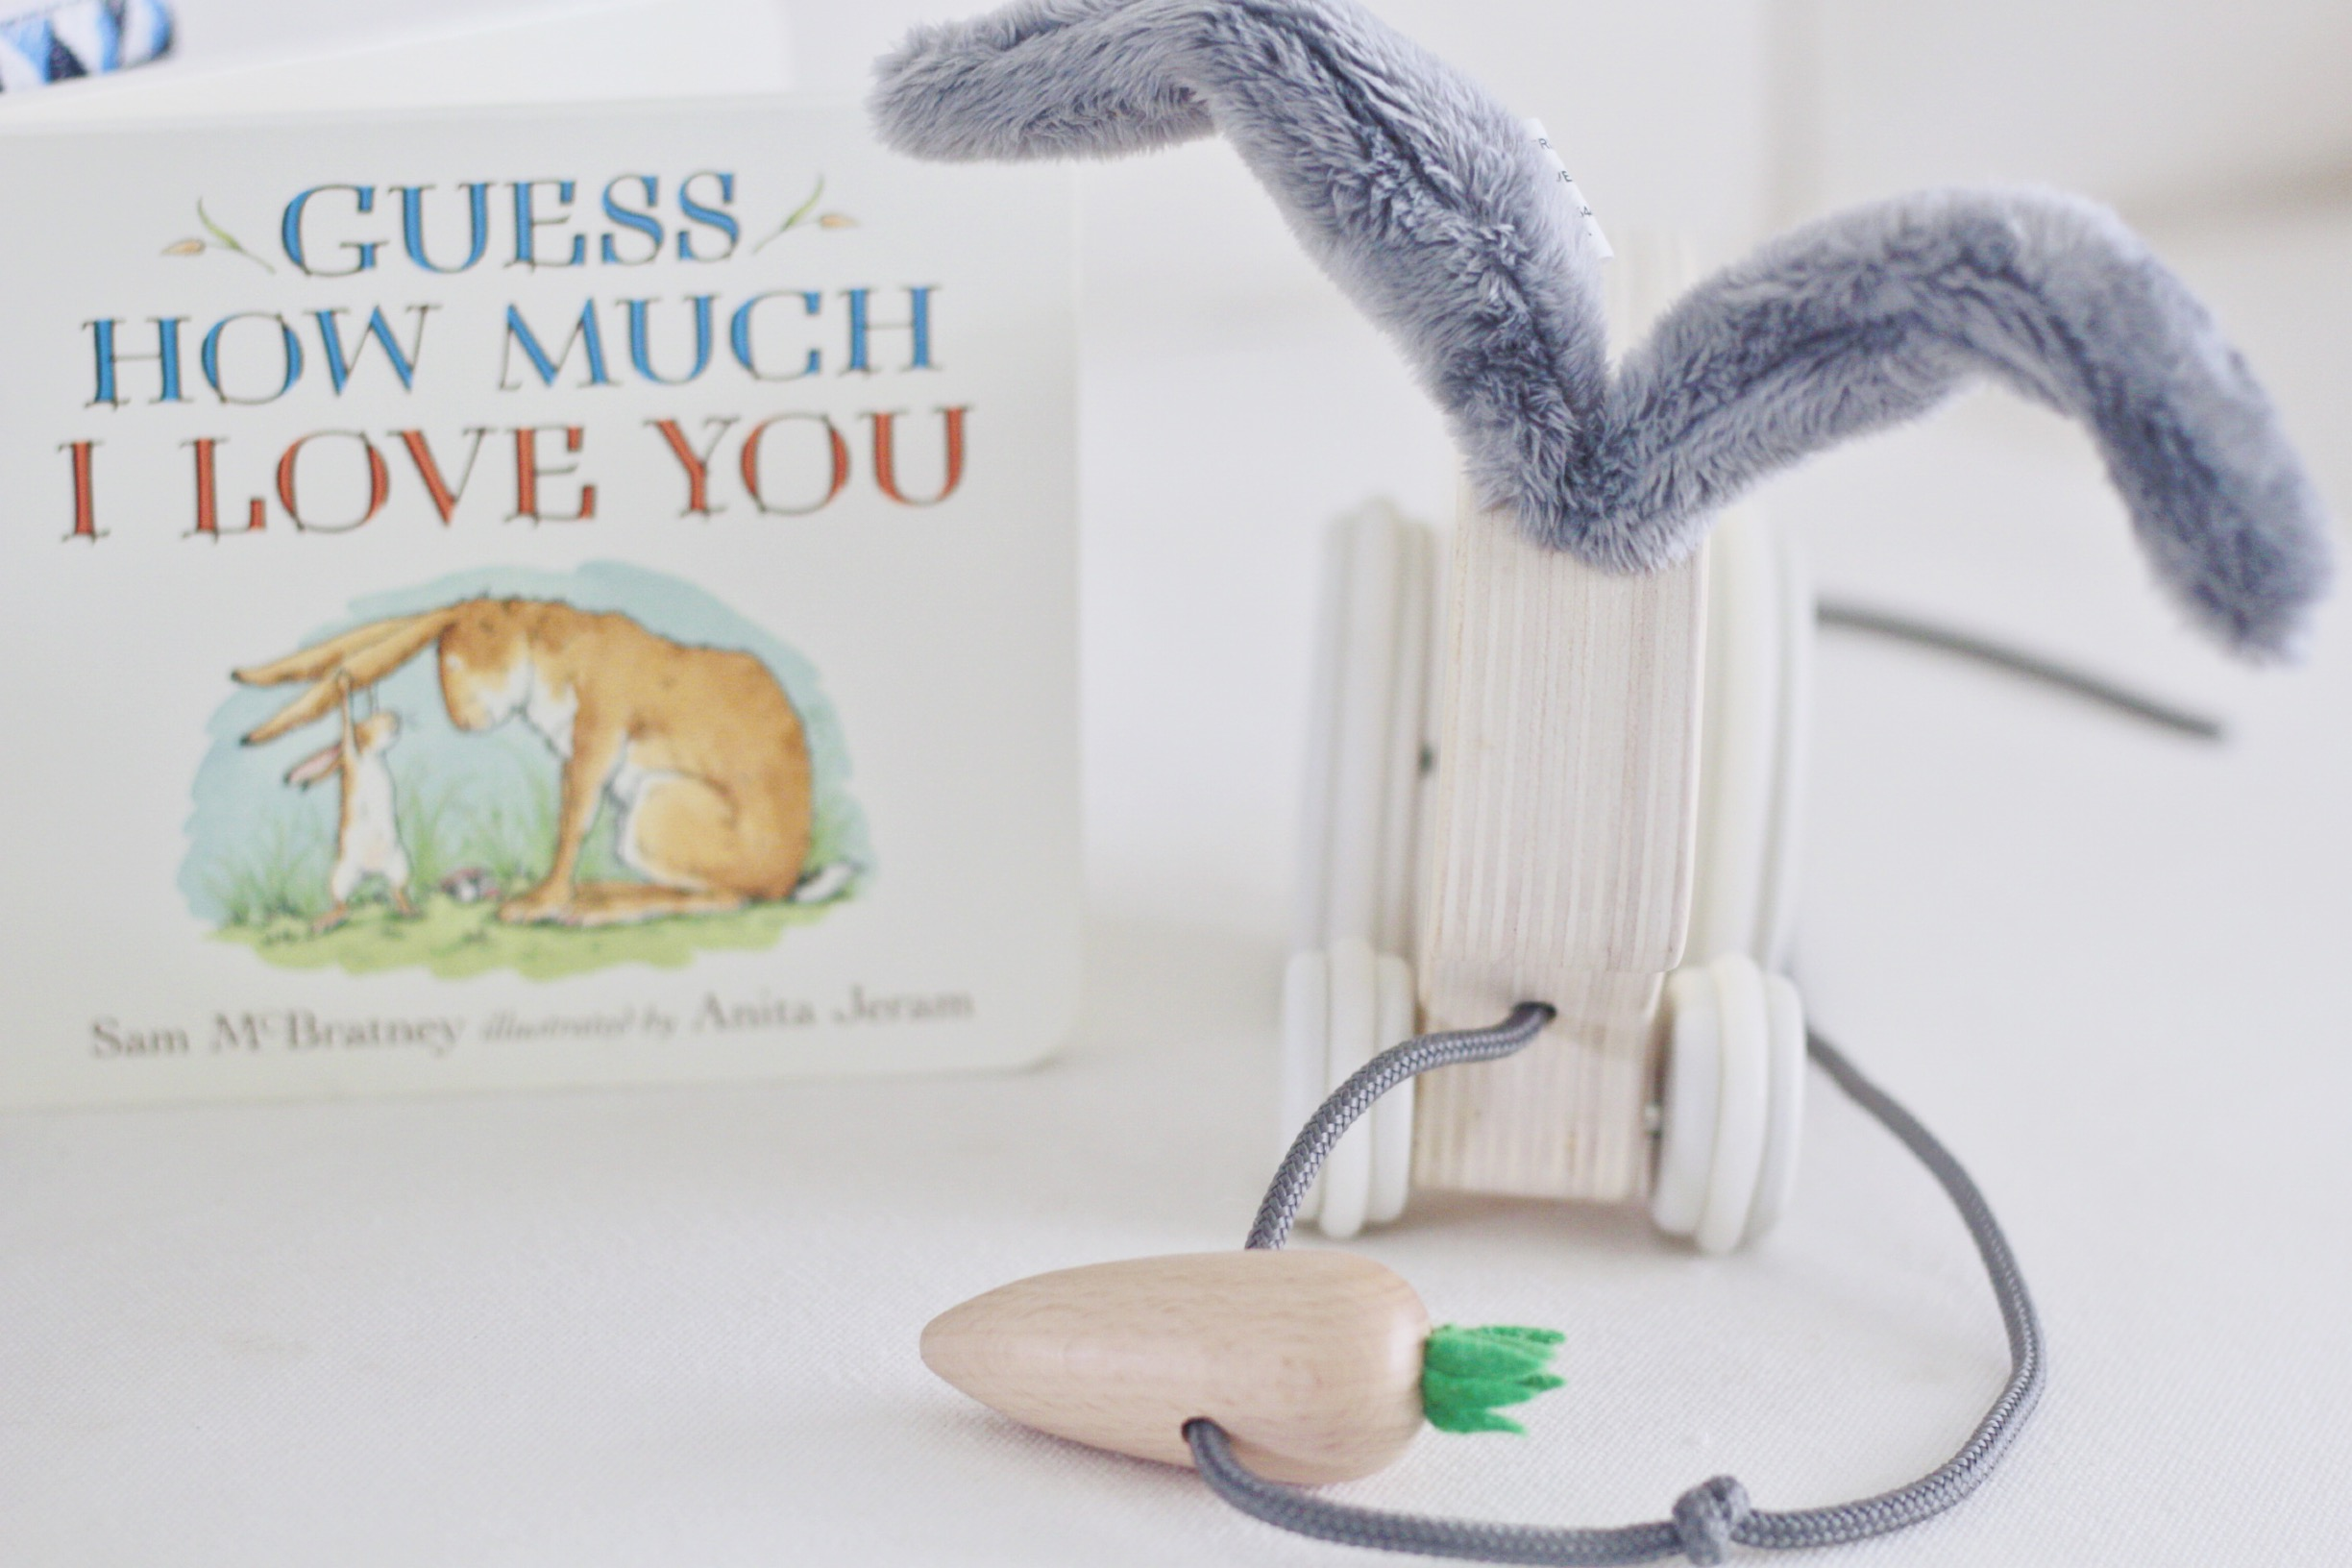 this book is a bedtime favorite, and this pull toy will be in good use in a few weeks when she is walking!